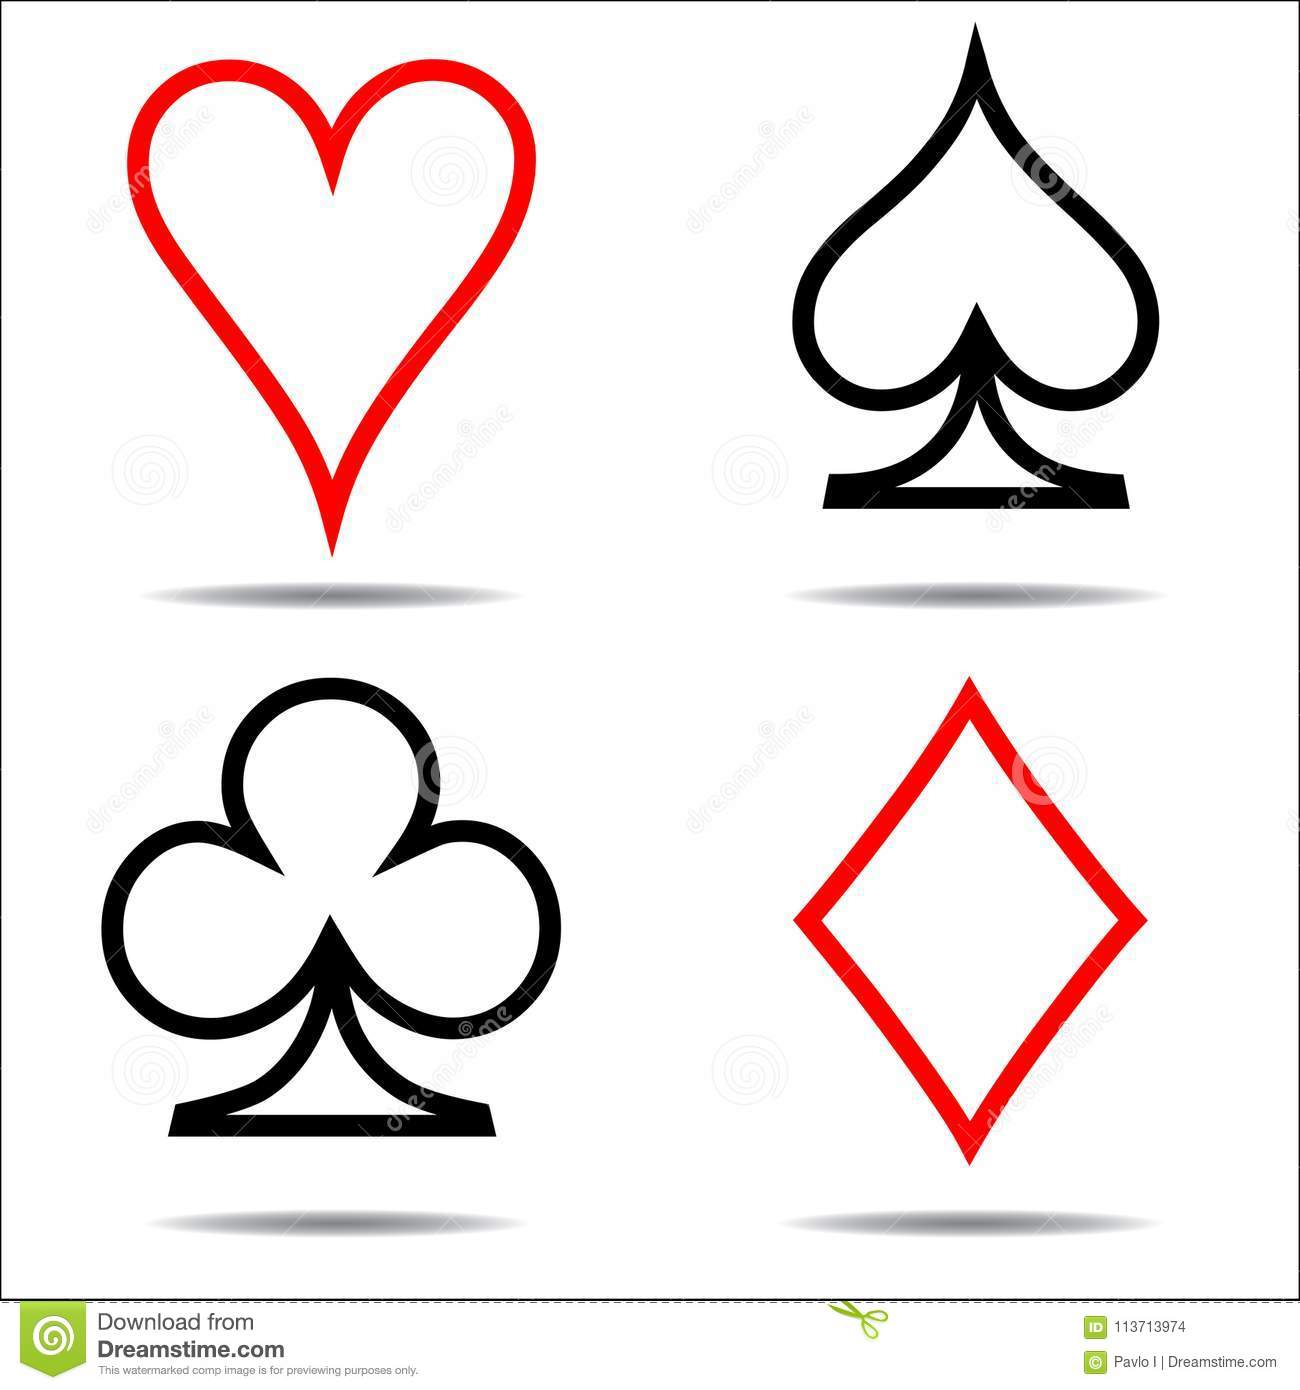 Colored card suit icon vector, playing cards symbols, one line